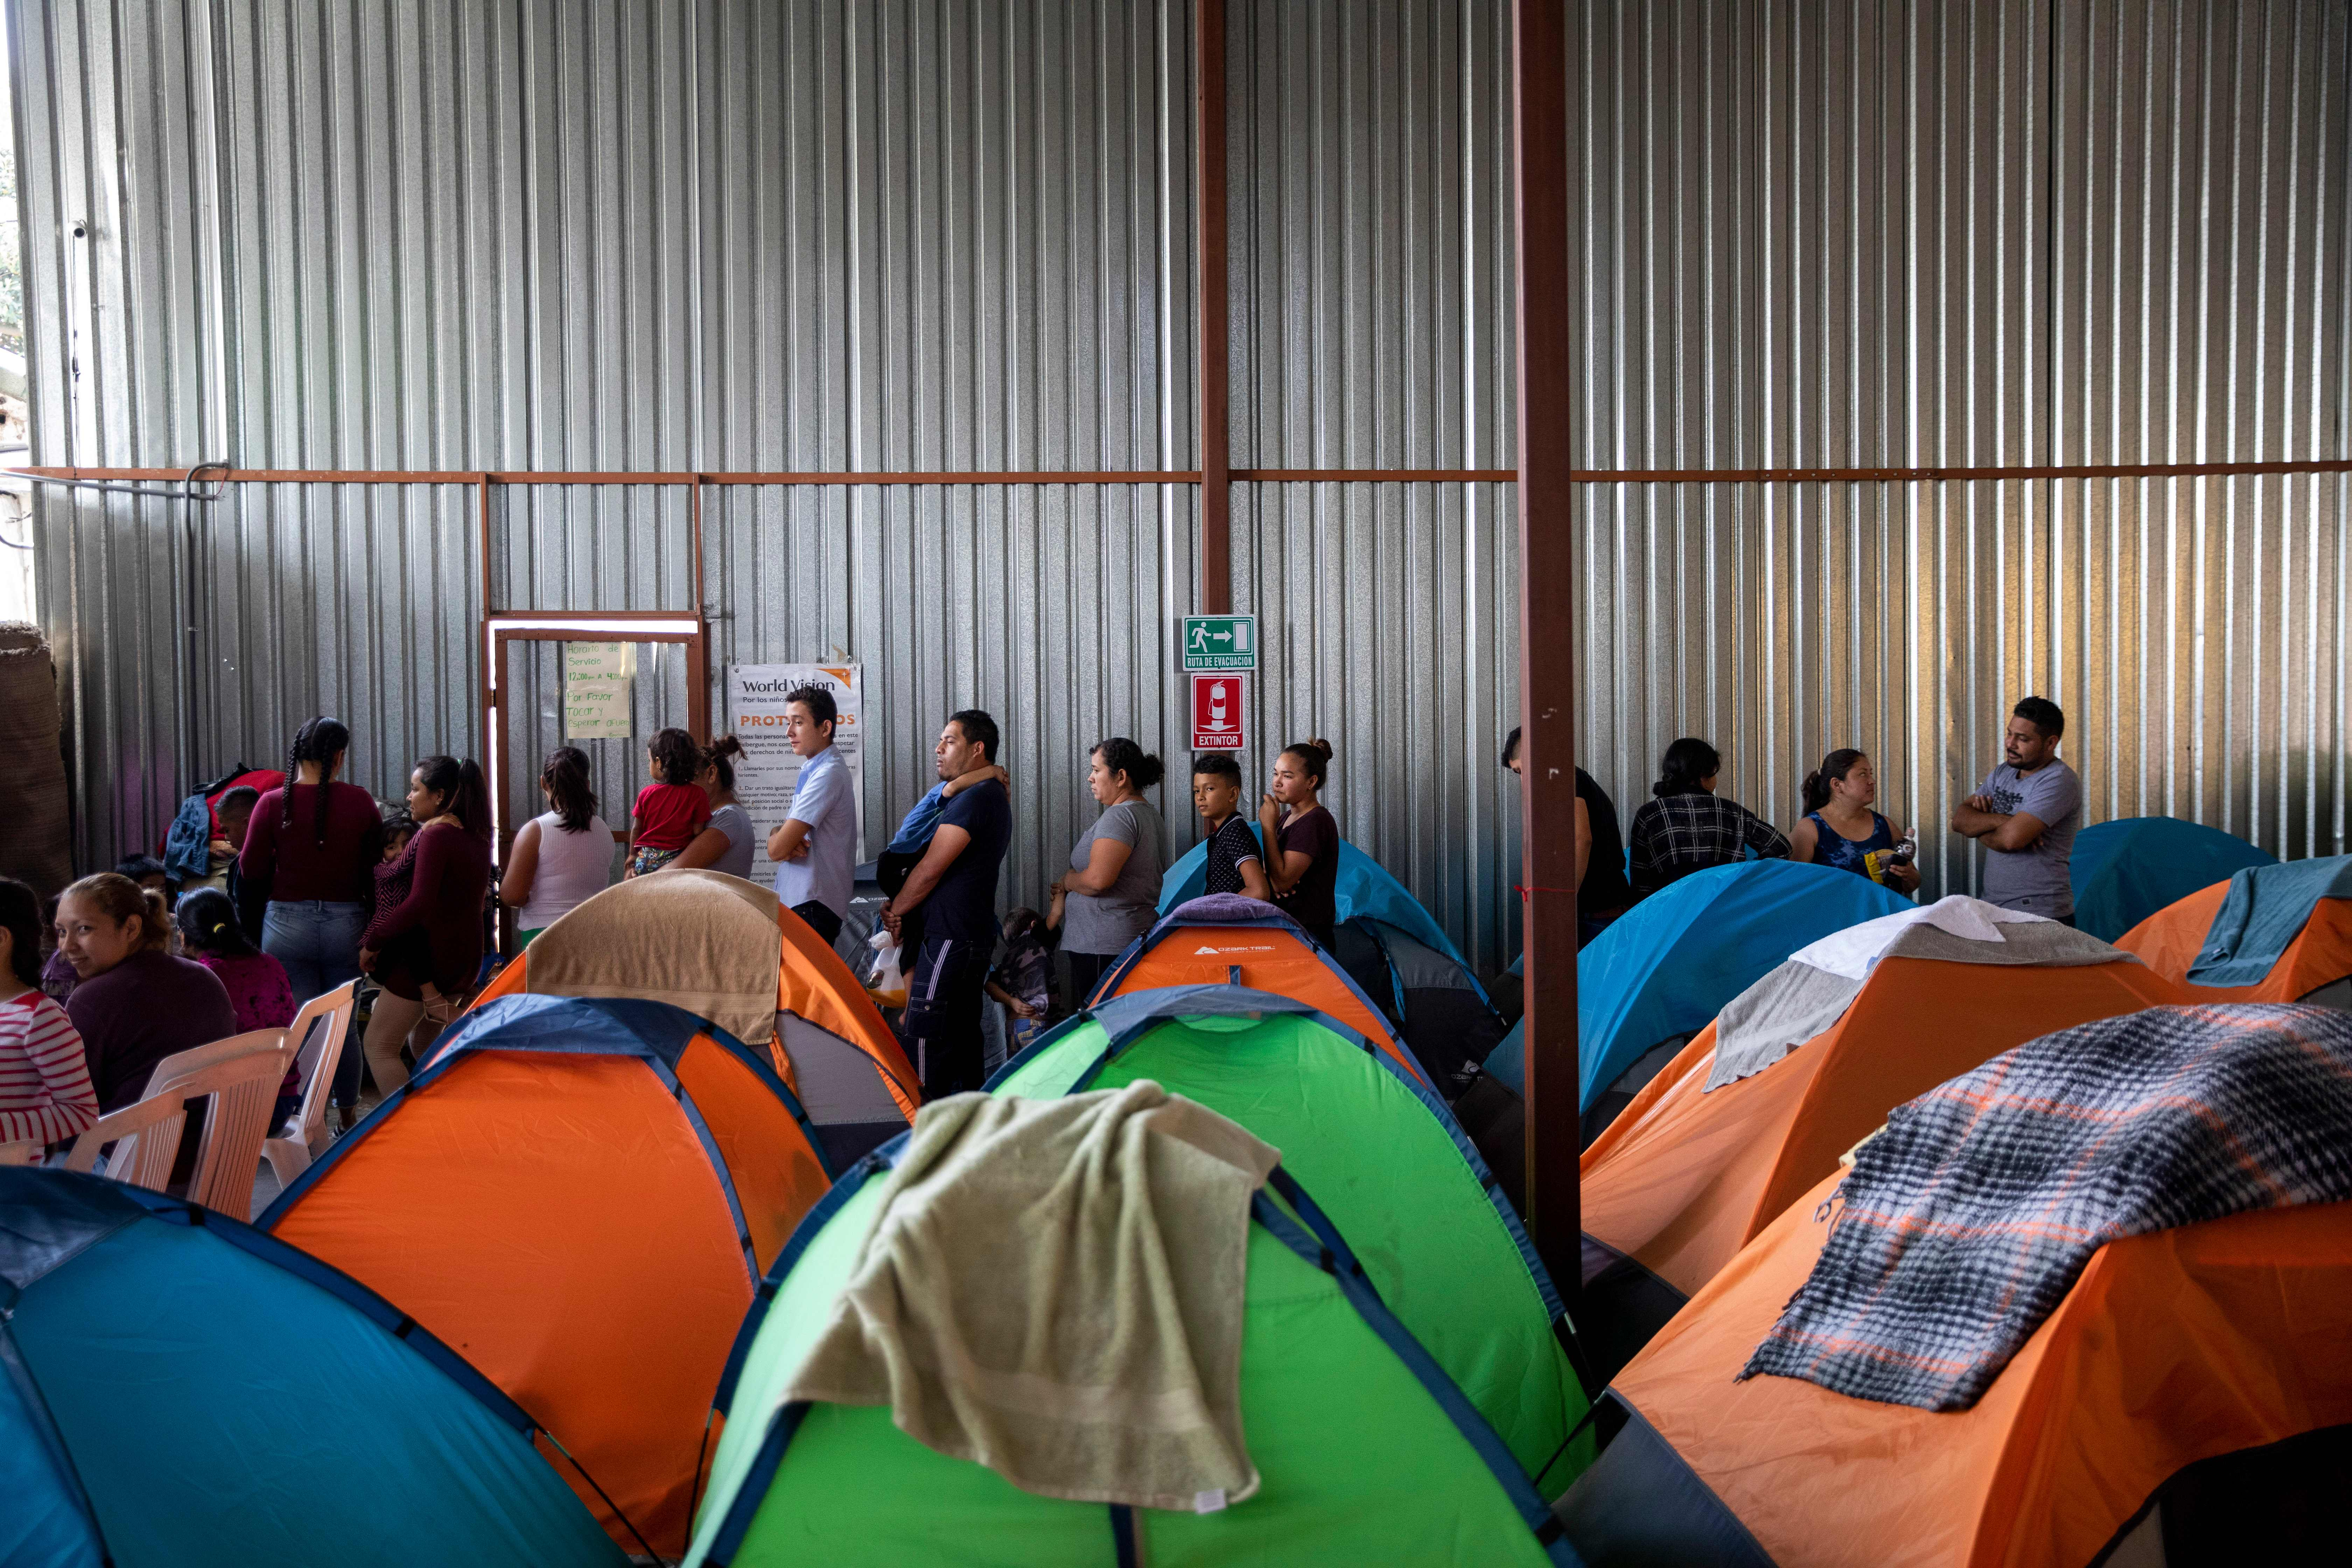 Asylum seekers wait in line behind a roomful of tents.